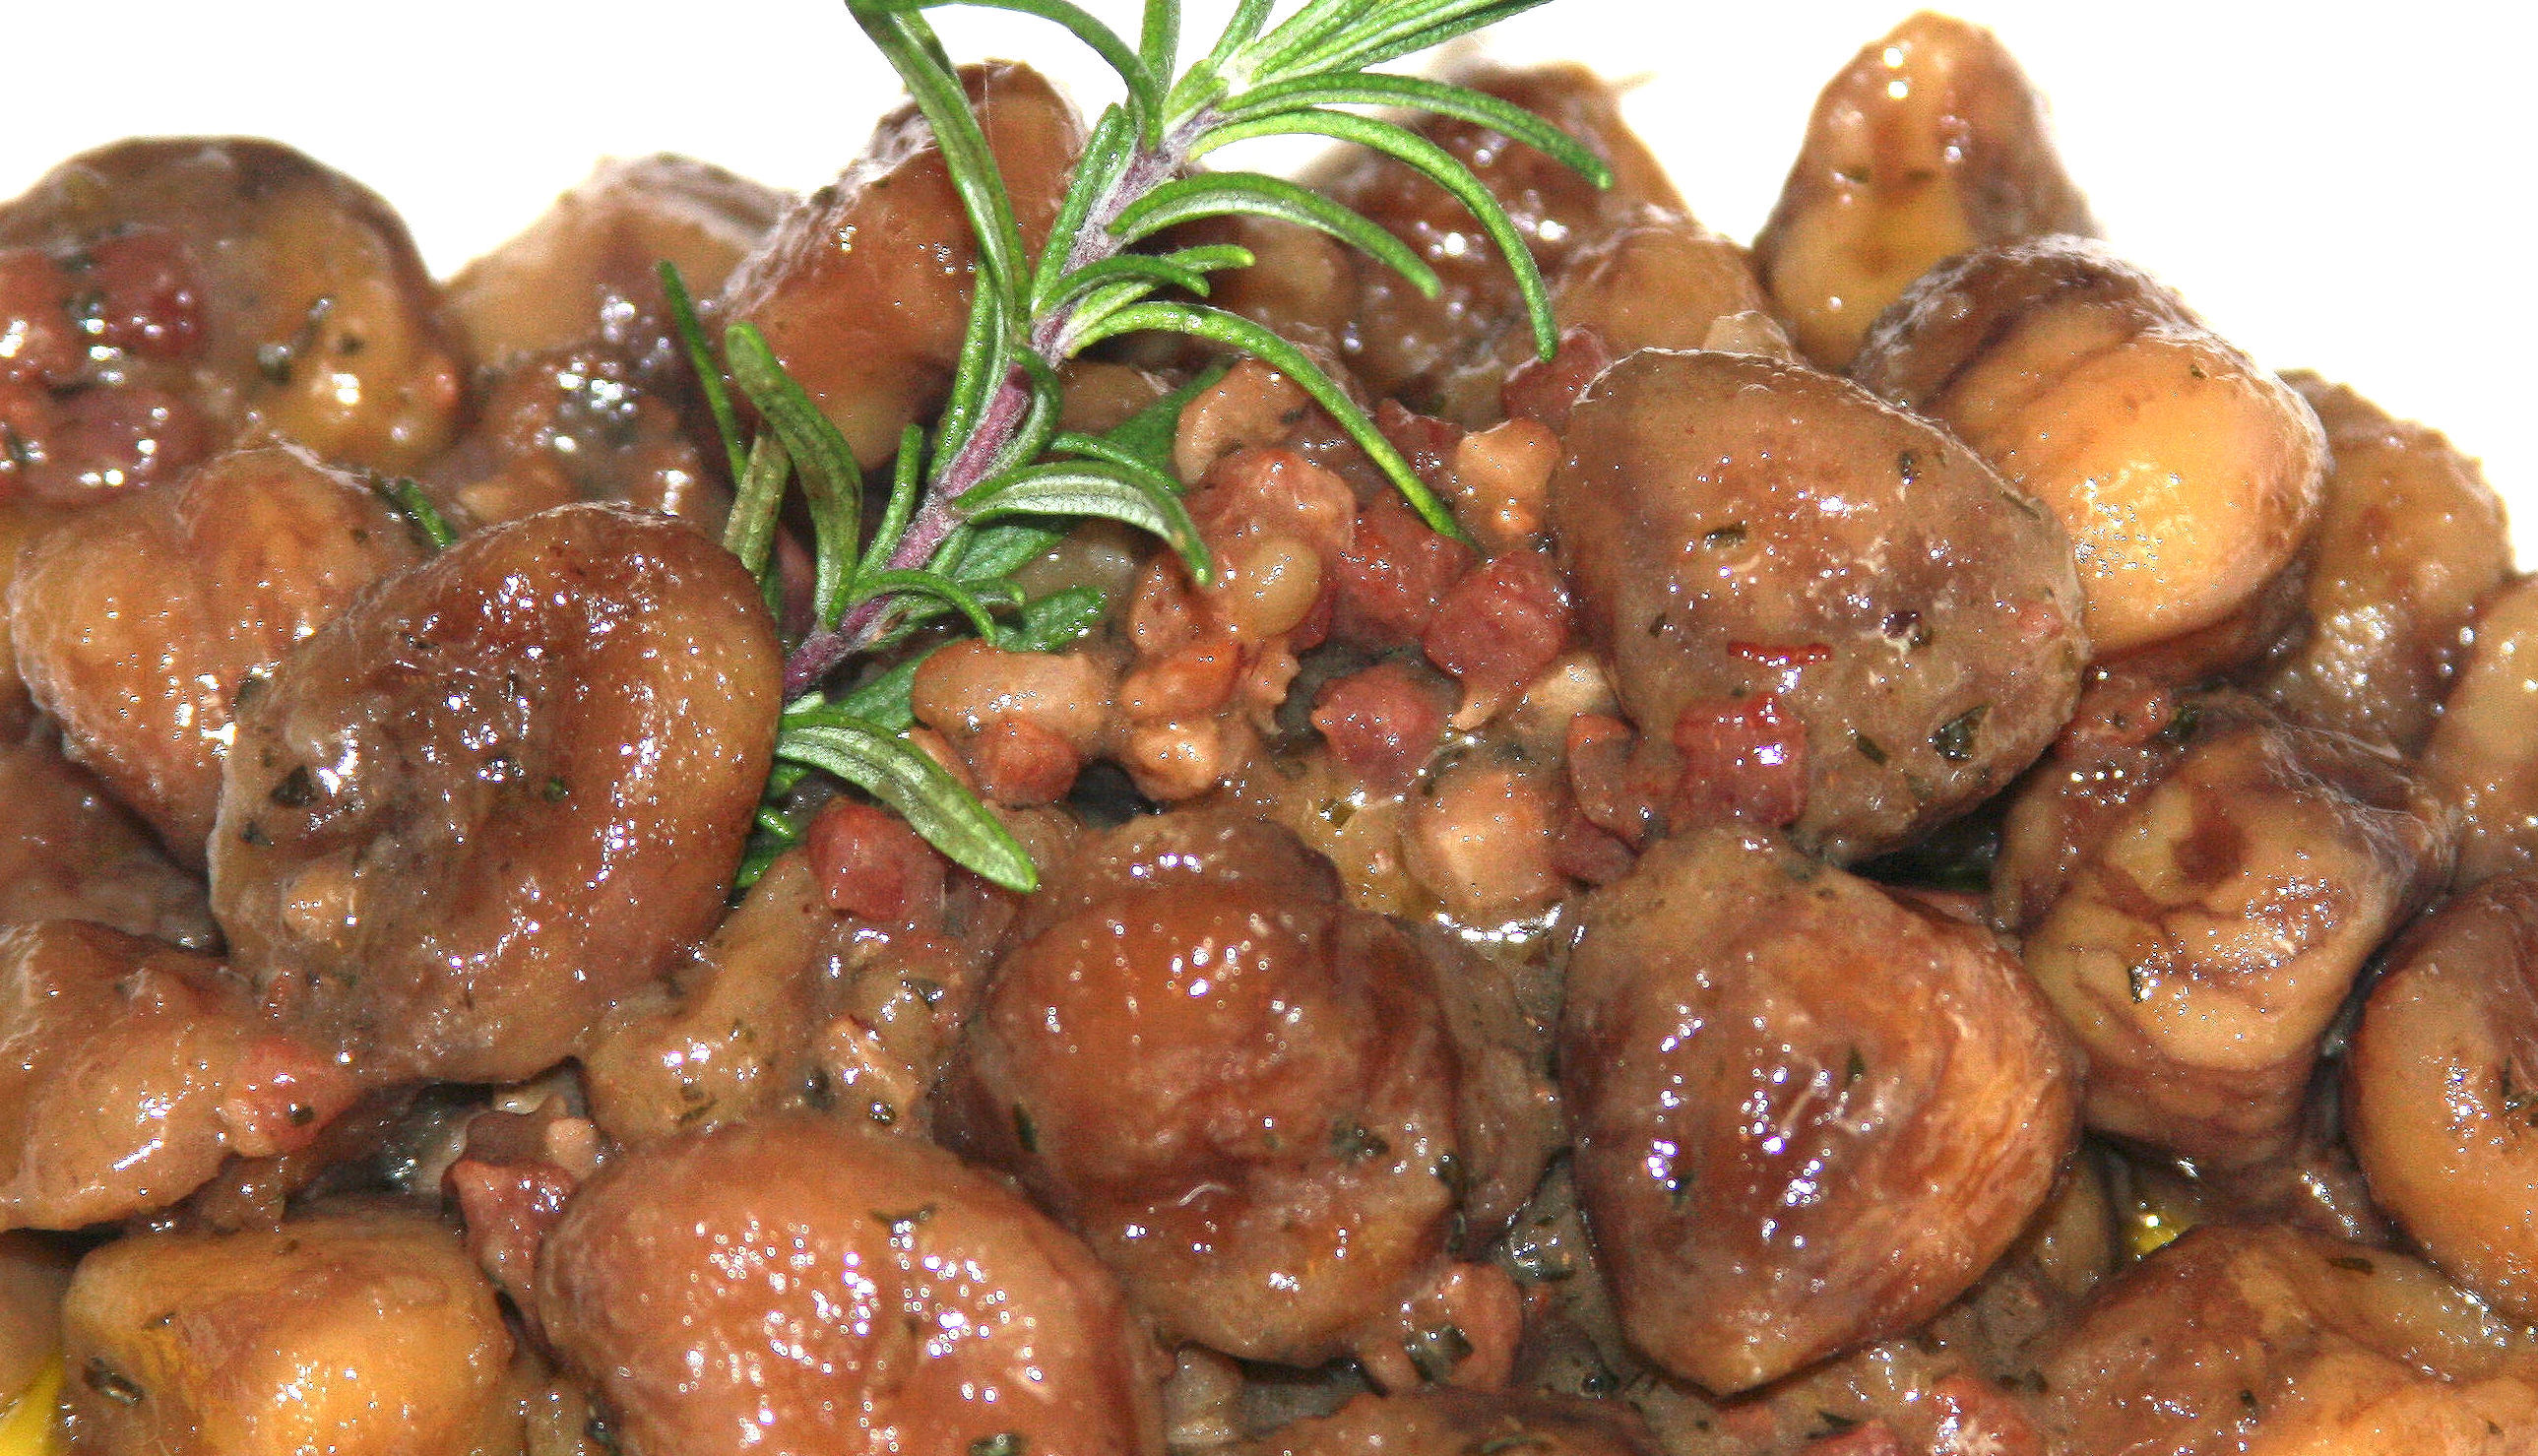 Braised Roasted Chestnuts with Pancetta and Rosemary